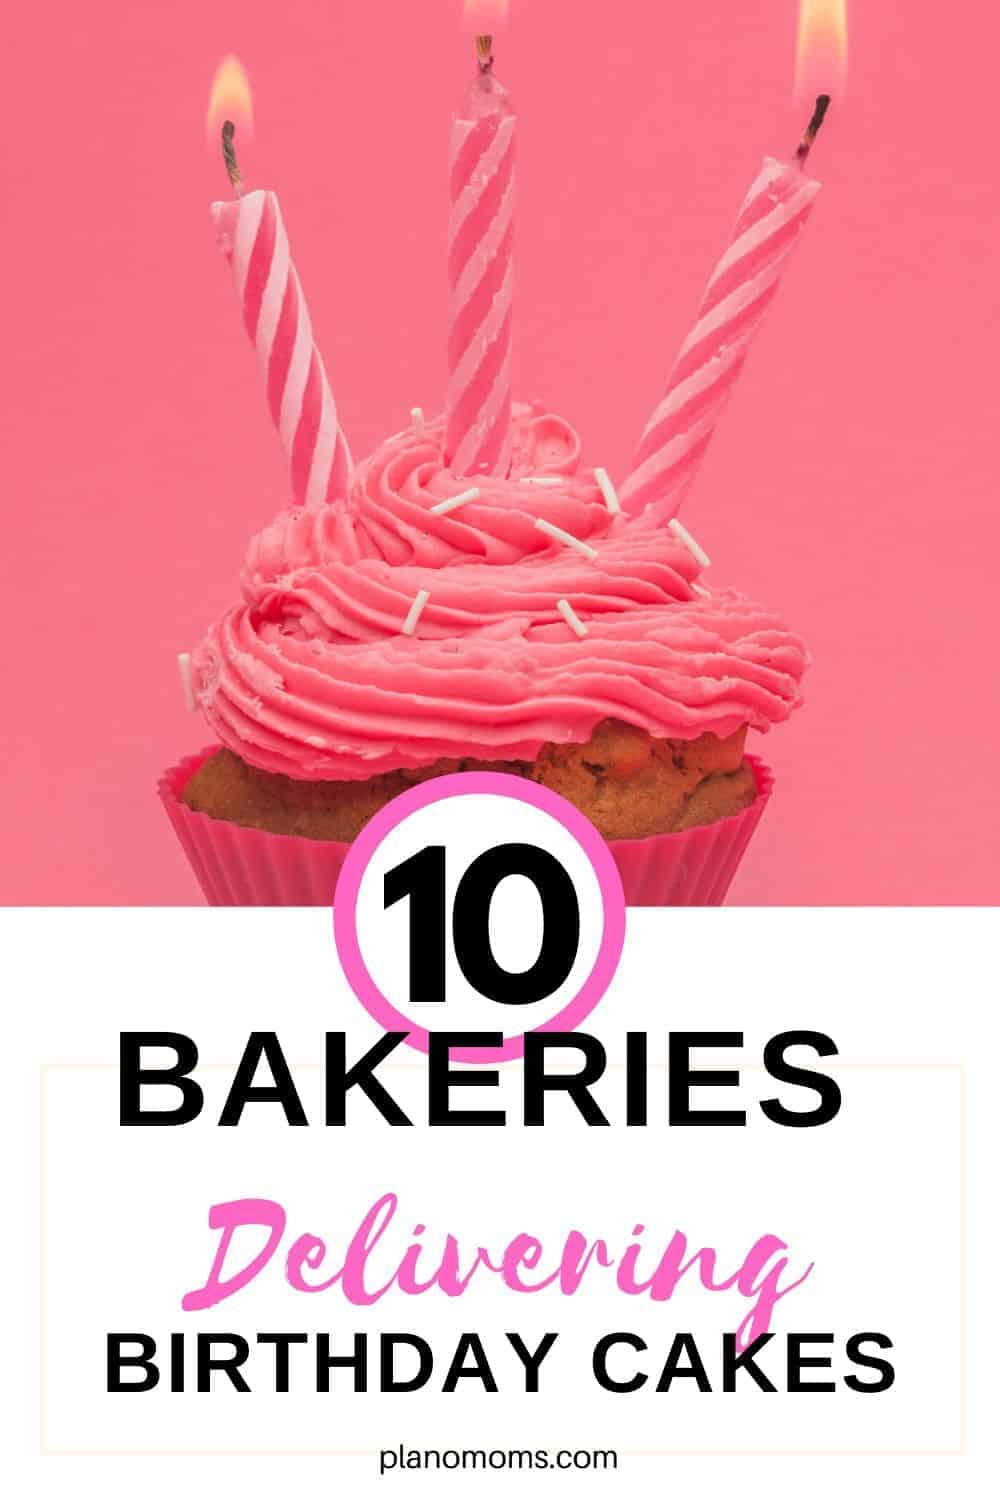 10 Bakers delivering Birthday Cakes